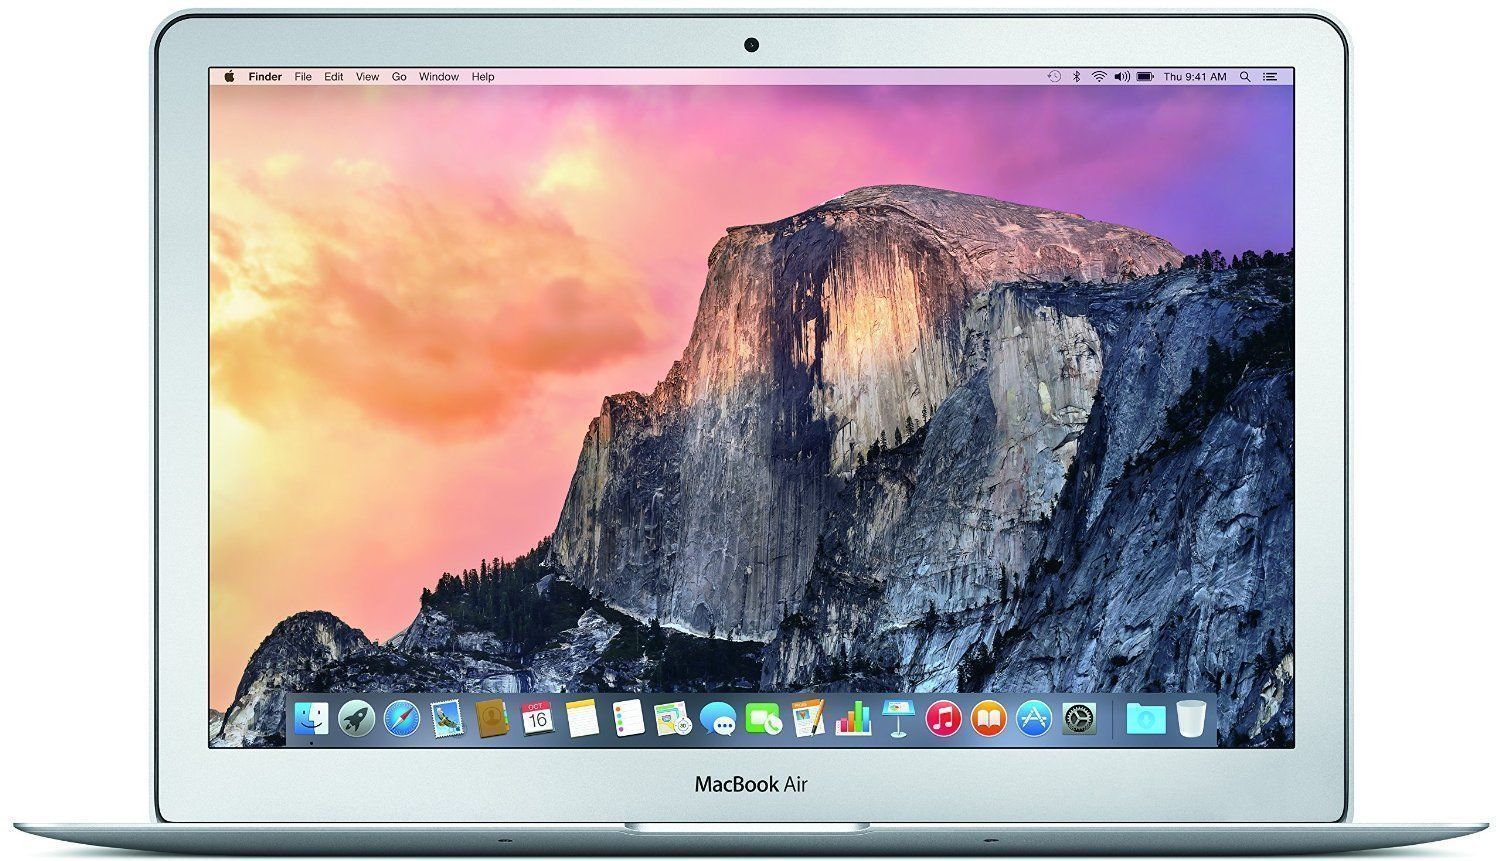 MacBook Air MD711 - Ecran 11.6 - Intel Core i5 1.4Ghz - RAM 4Gb - SSD 128Gb - OS X El Capitan